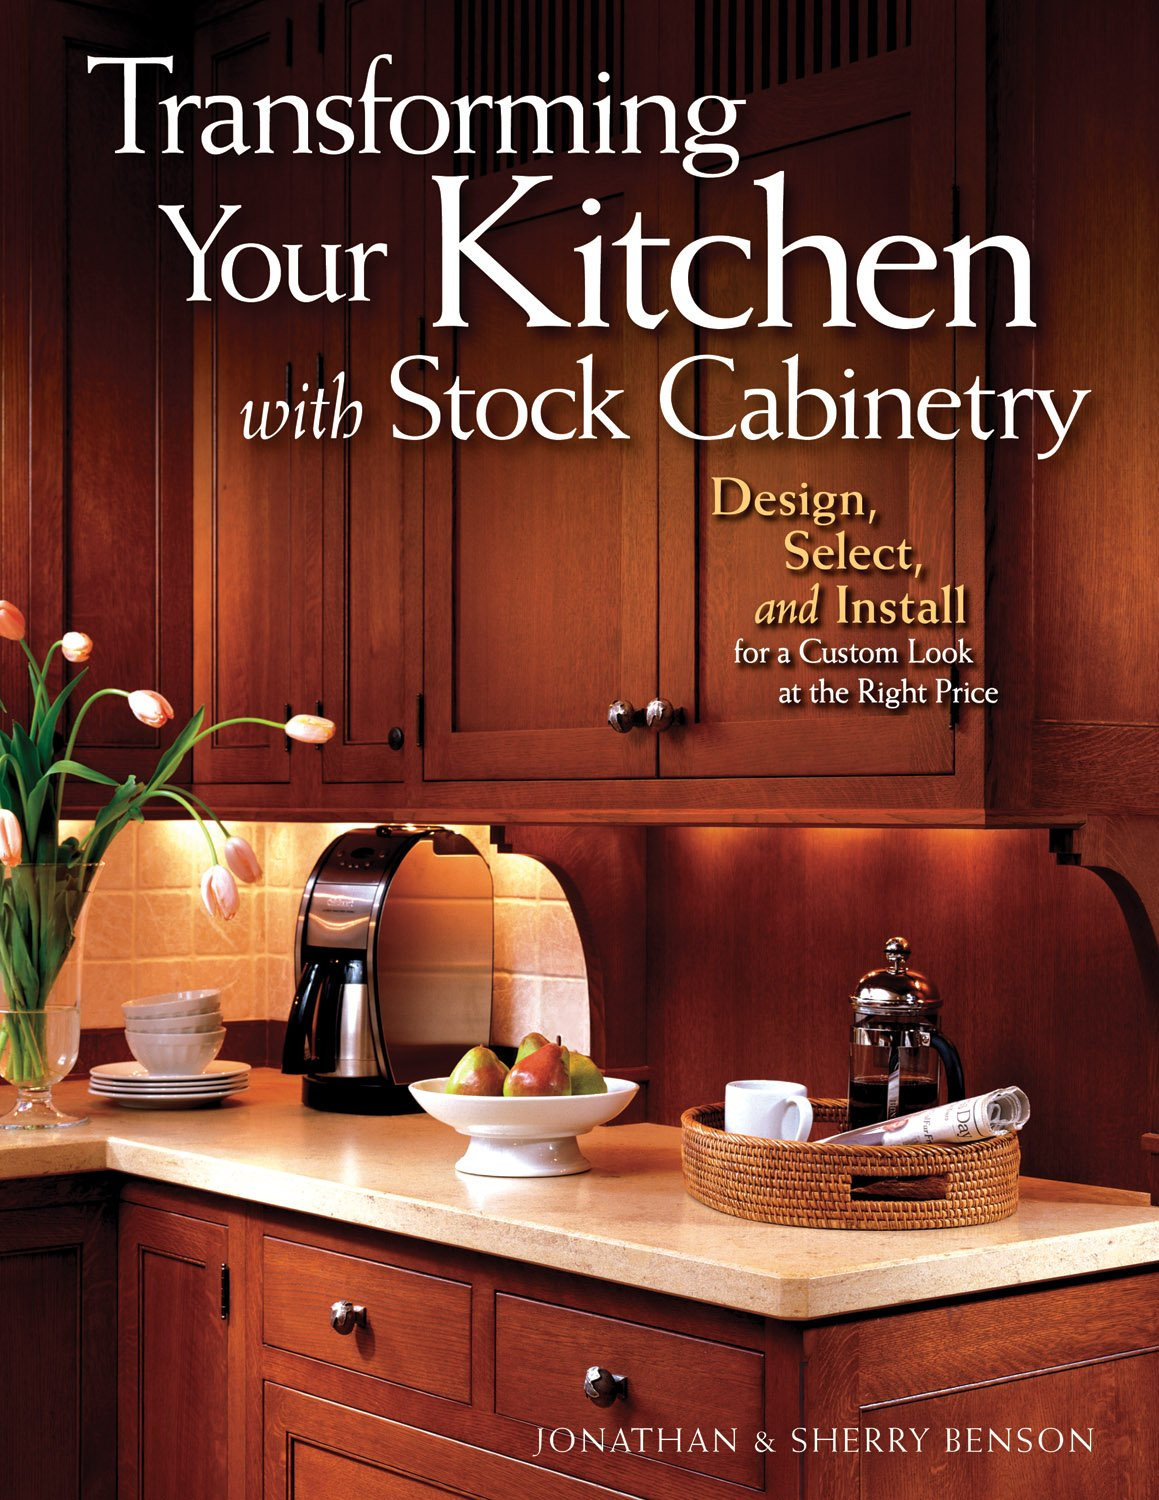 Transforming Your Kitchen With Stock Cabinetry Design